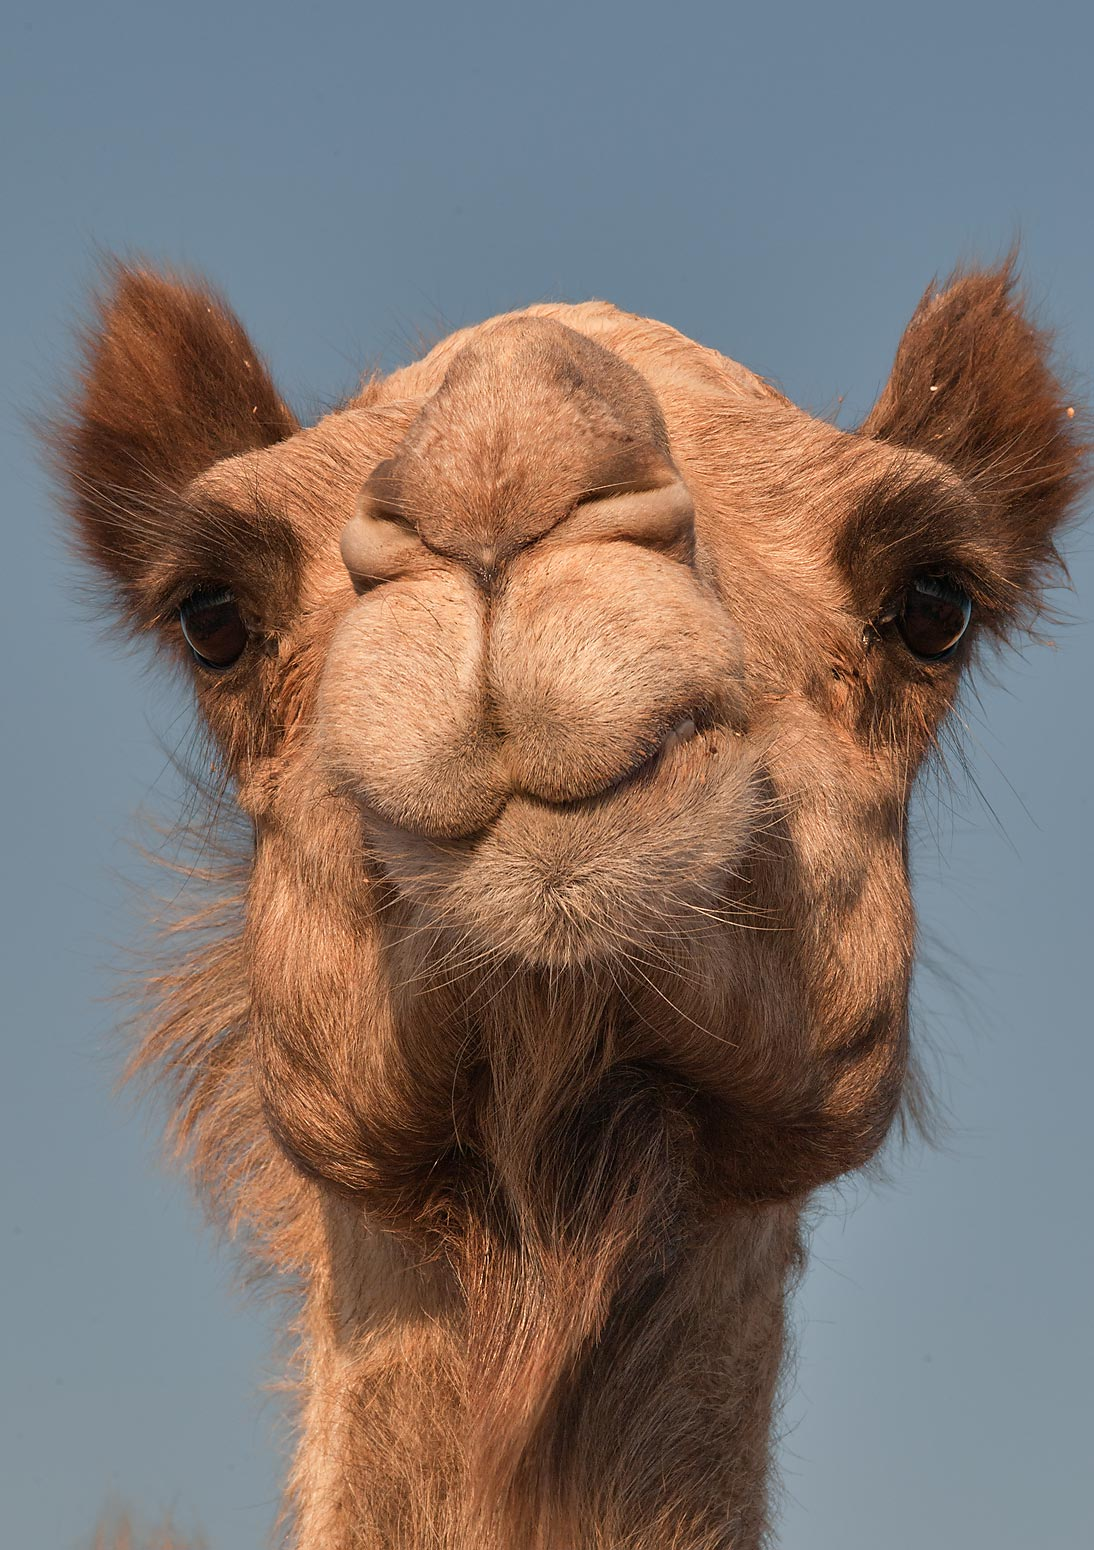 Head of a brown camel in Camel Market (Souq), Wholesale Markets area. Doha, Qatar